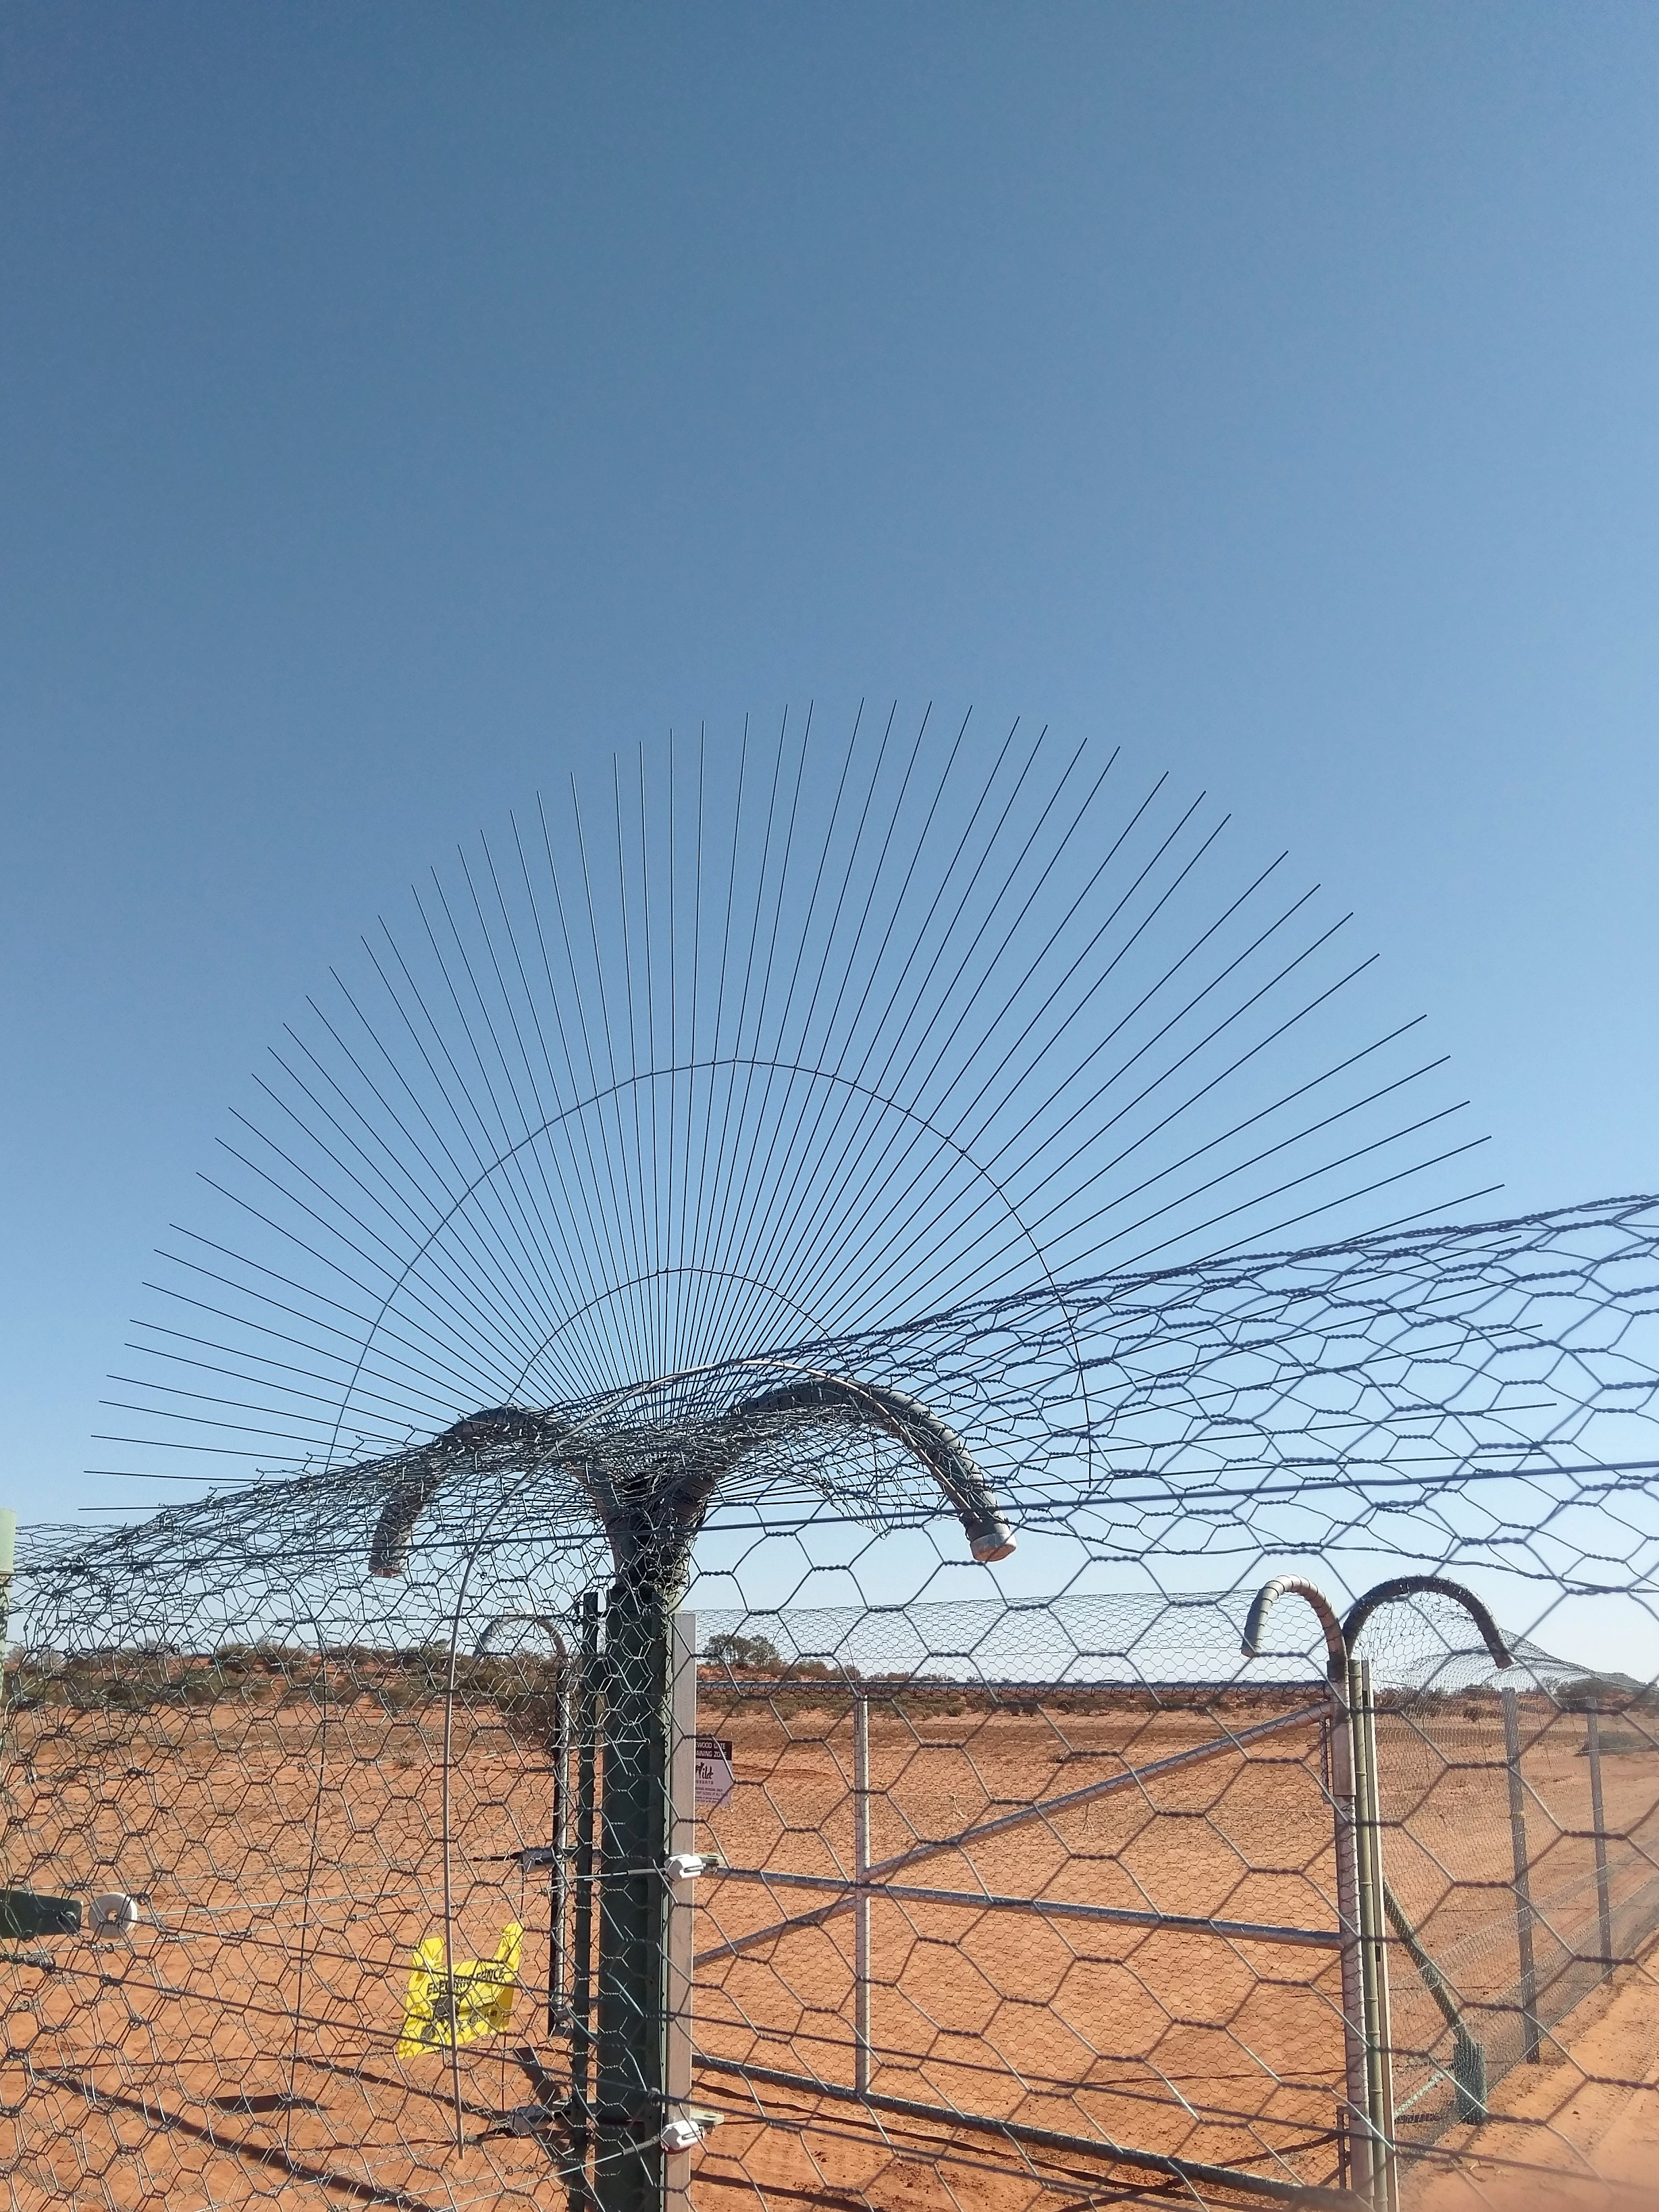 091 special guard at fence junction.jpg